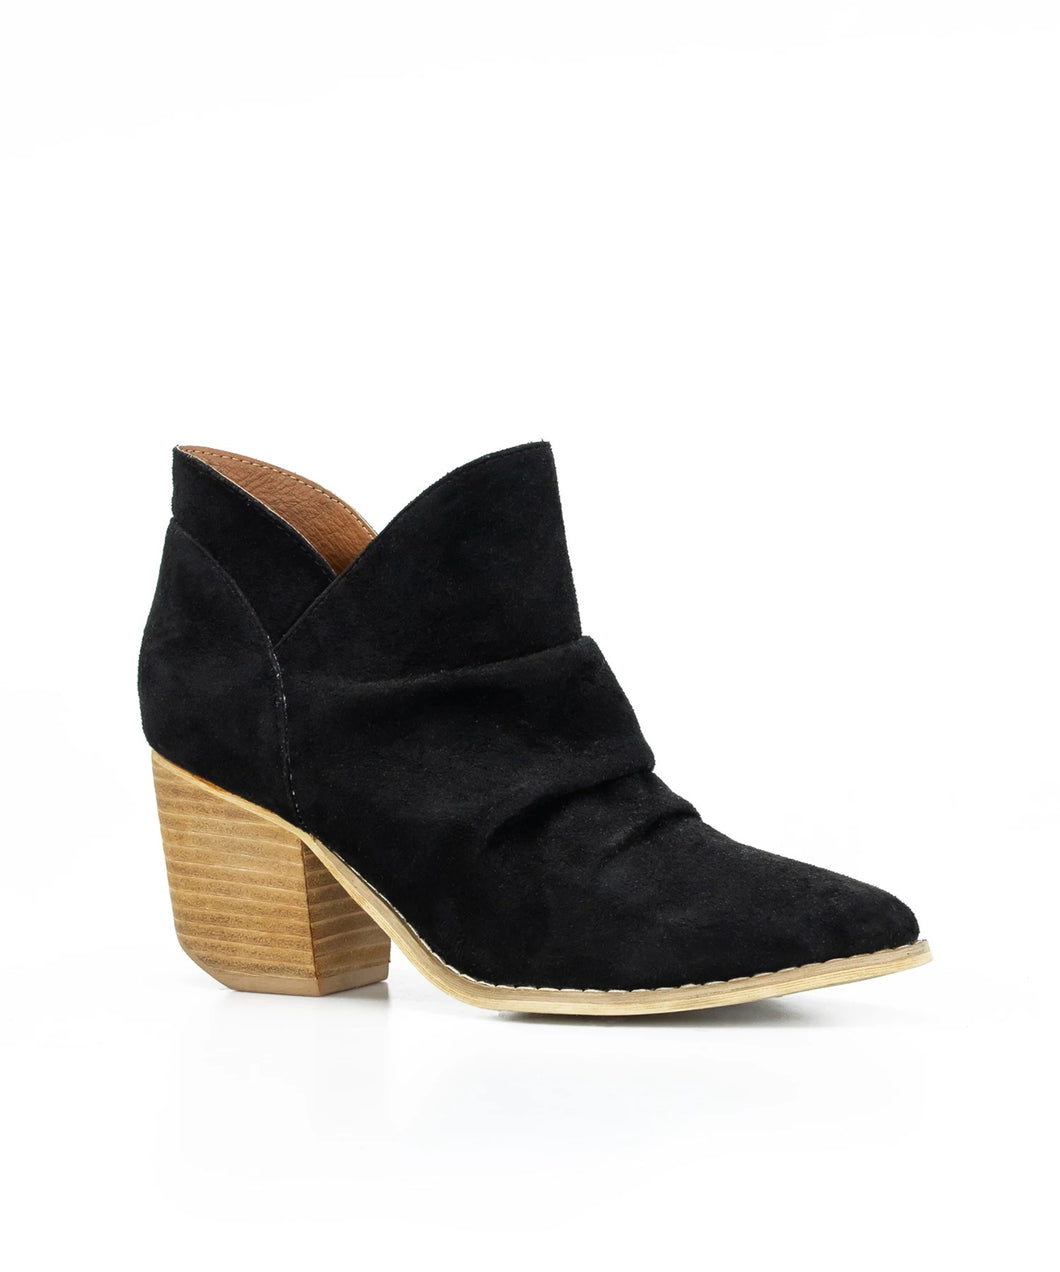 Women's High Heel Round Head Ankle Boots